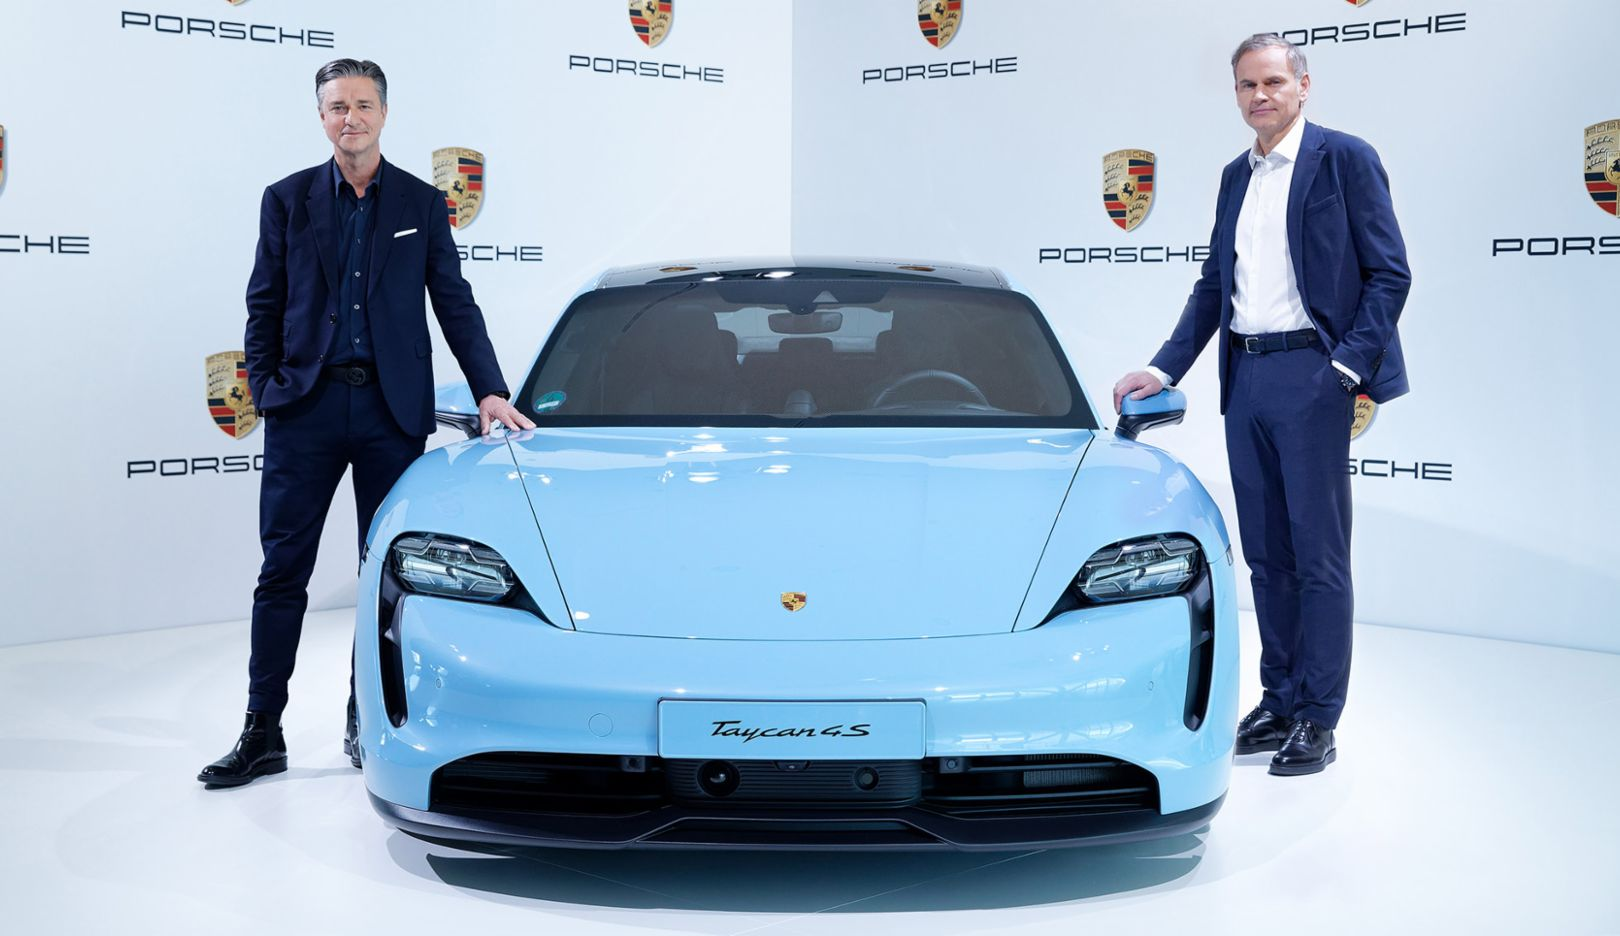 Highlight cut: The annual press conference of Porsche AG